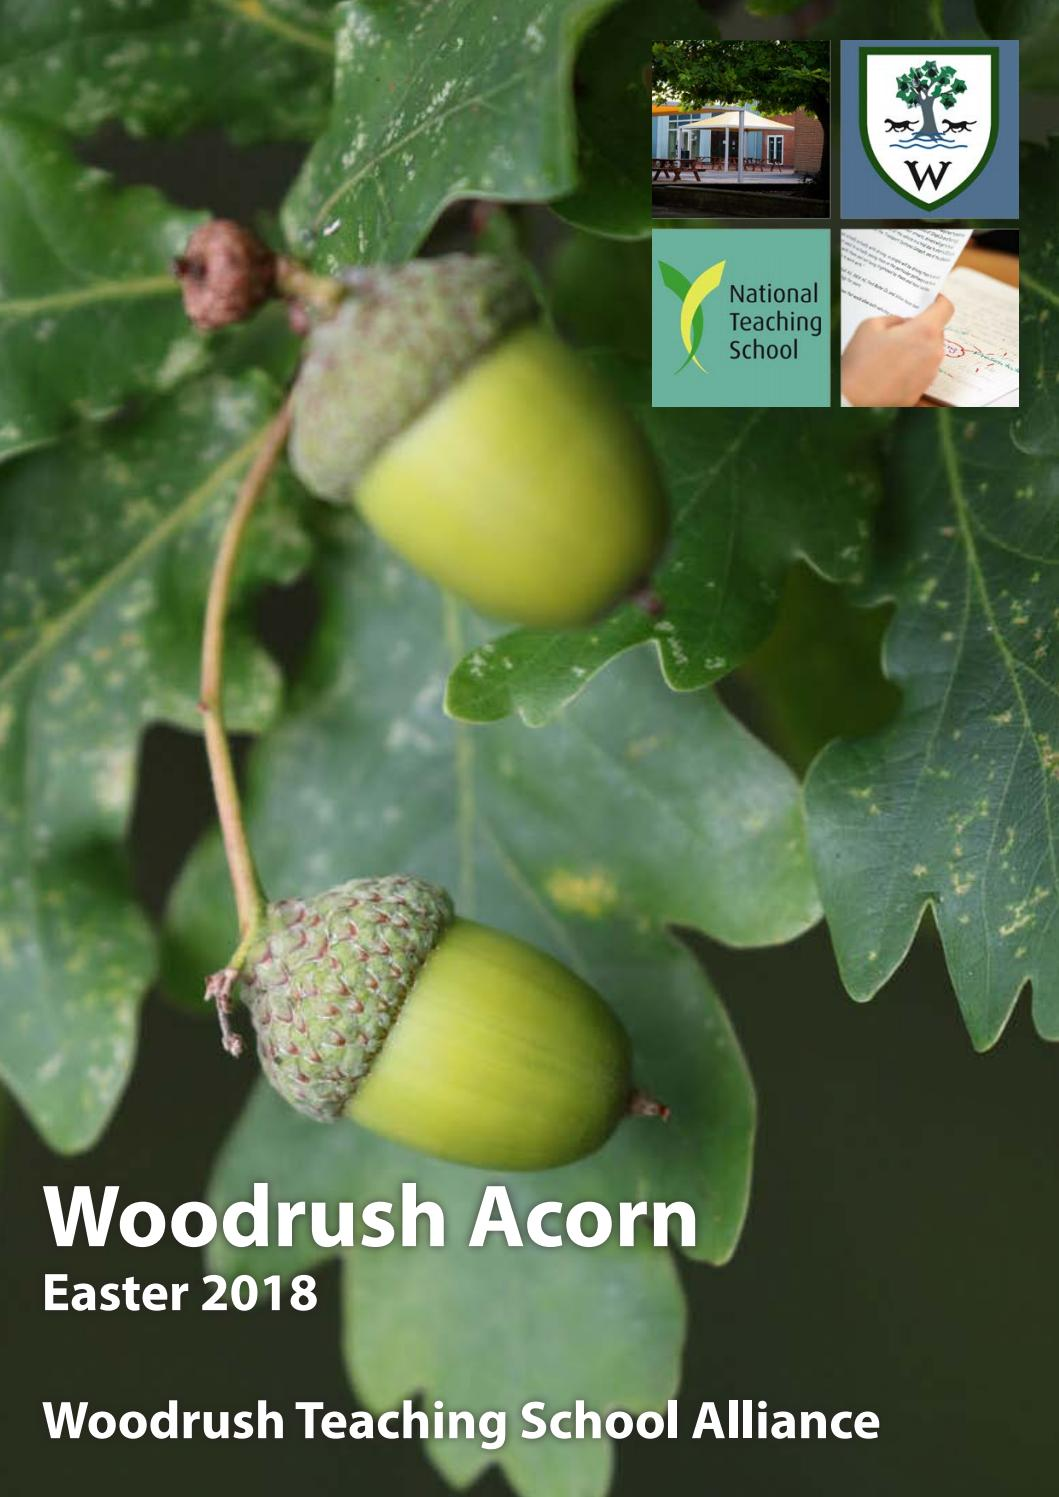 Woodrush Acorn Easter 2018 By High Issuu Are A Group Prefrawn Electrical Symbols For Making